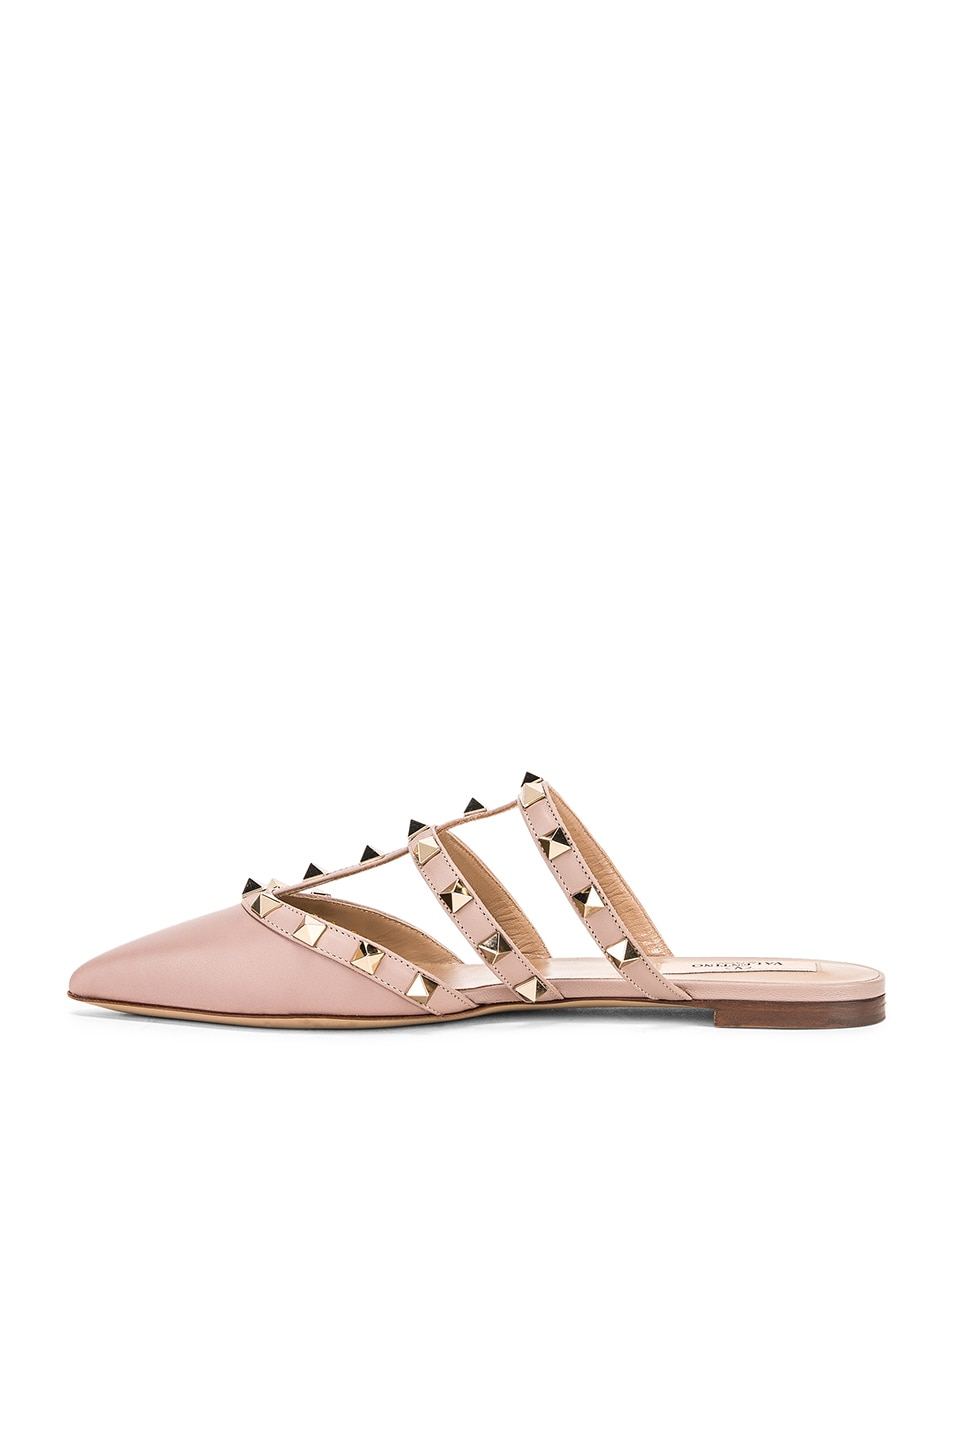 Image 5 of Valentino Rockstud Mules in Poudre